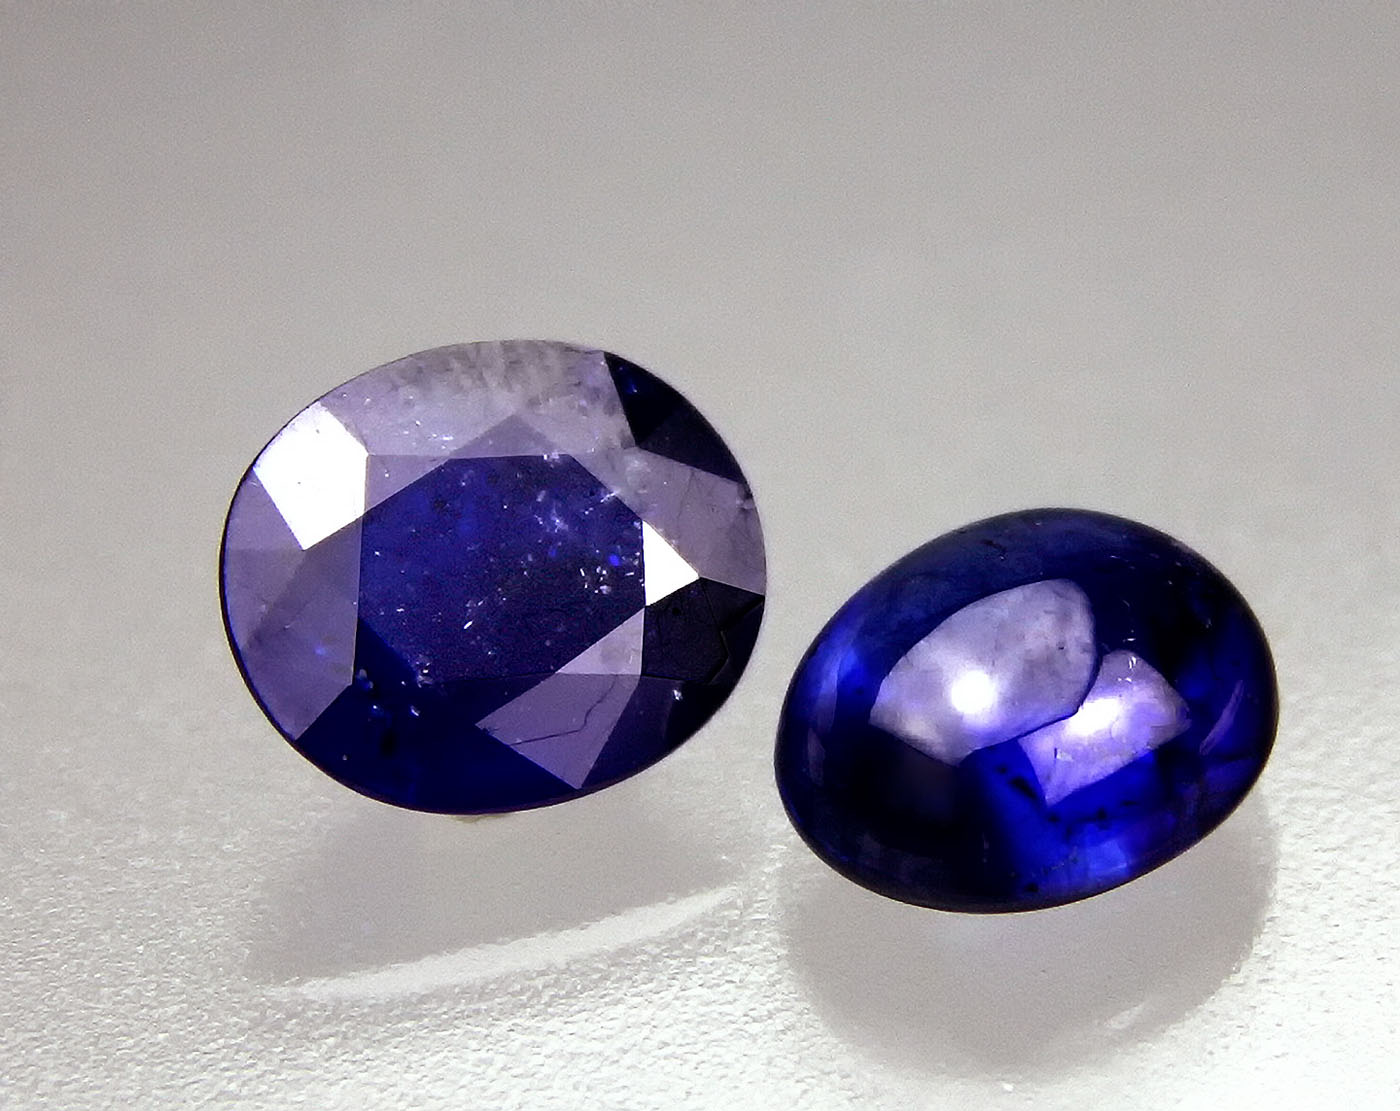 Figure 1. Two blue stones weighing 7.57 ct (left) and 6.62 ct (right) submitted to GIT for testing in May 2012. Photo: Warinthip Krajae-Jan